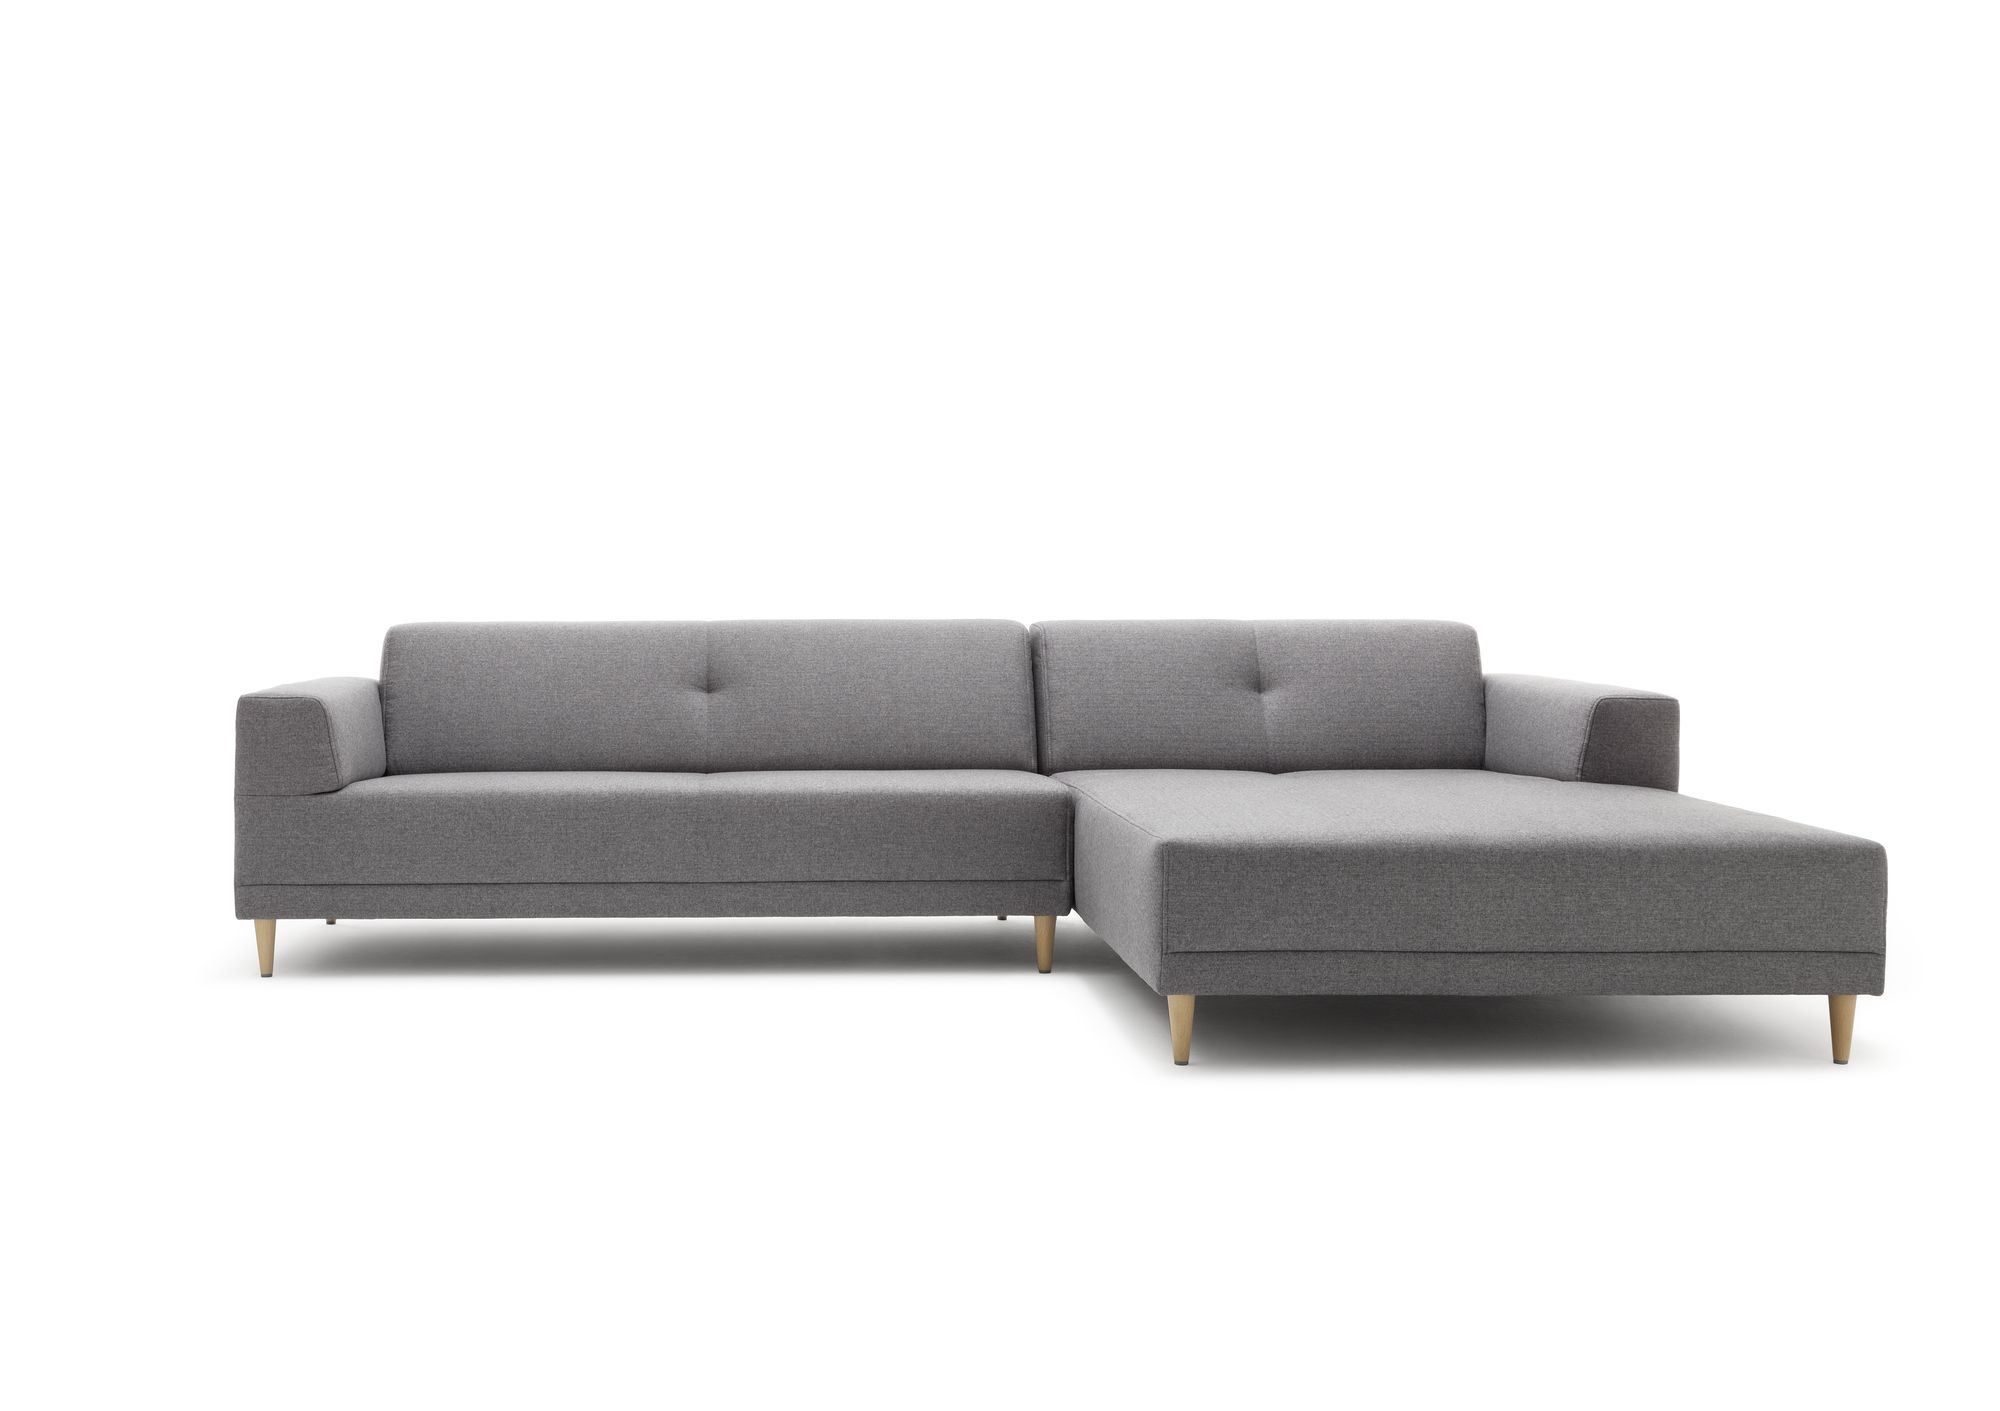 Rolf Benz Sofa 6600 Freistil 189 Rolf Benz Sofa Mit Recamiere In Stoff